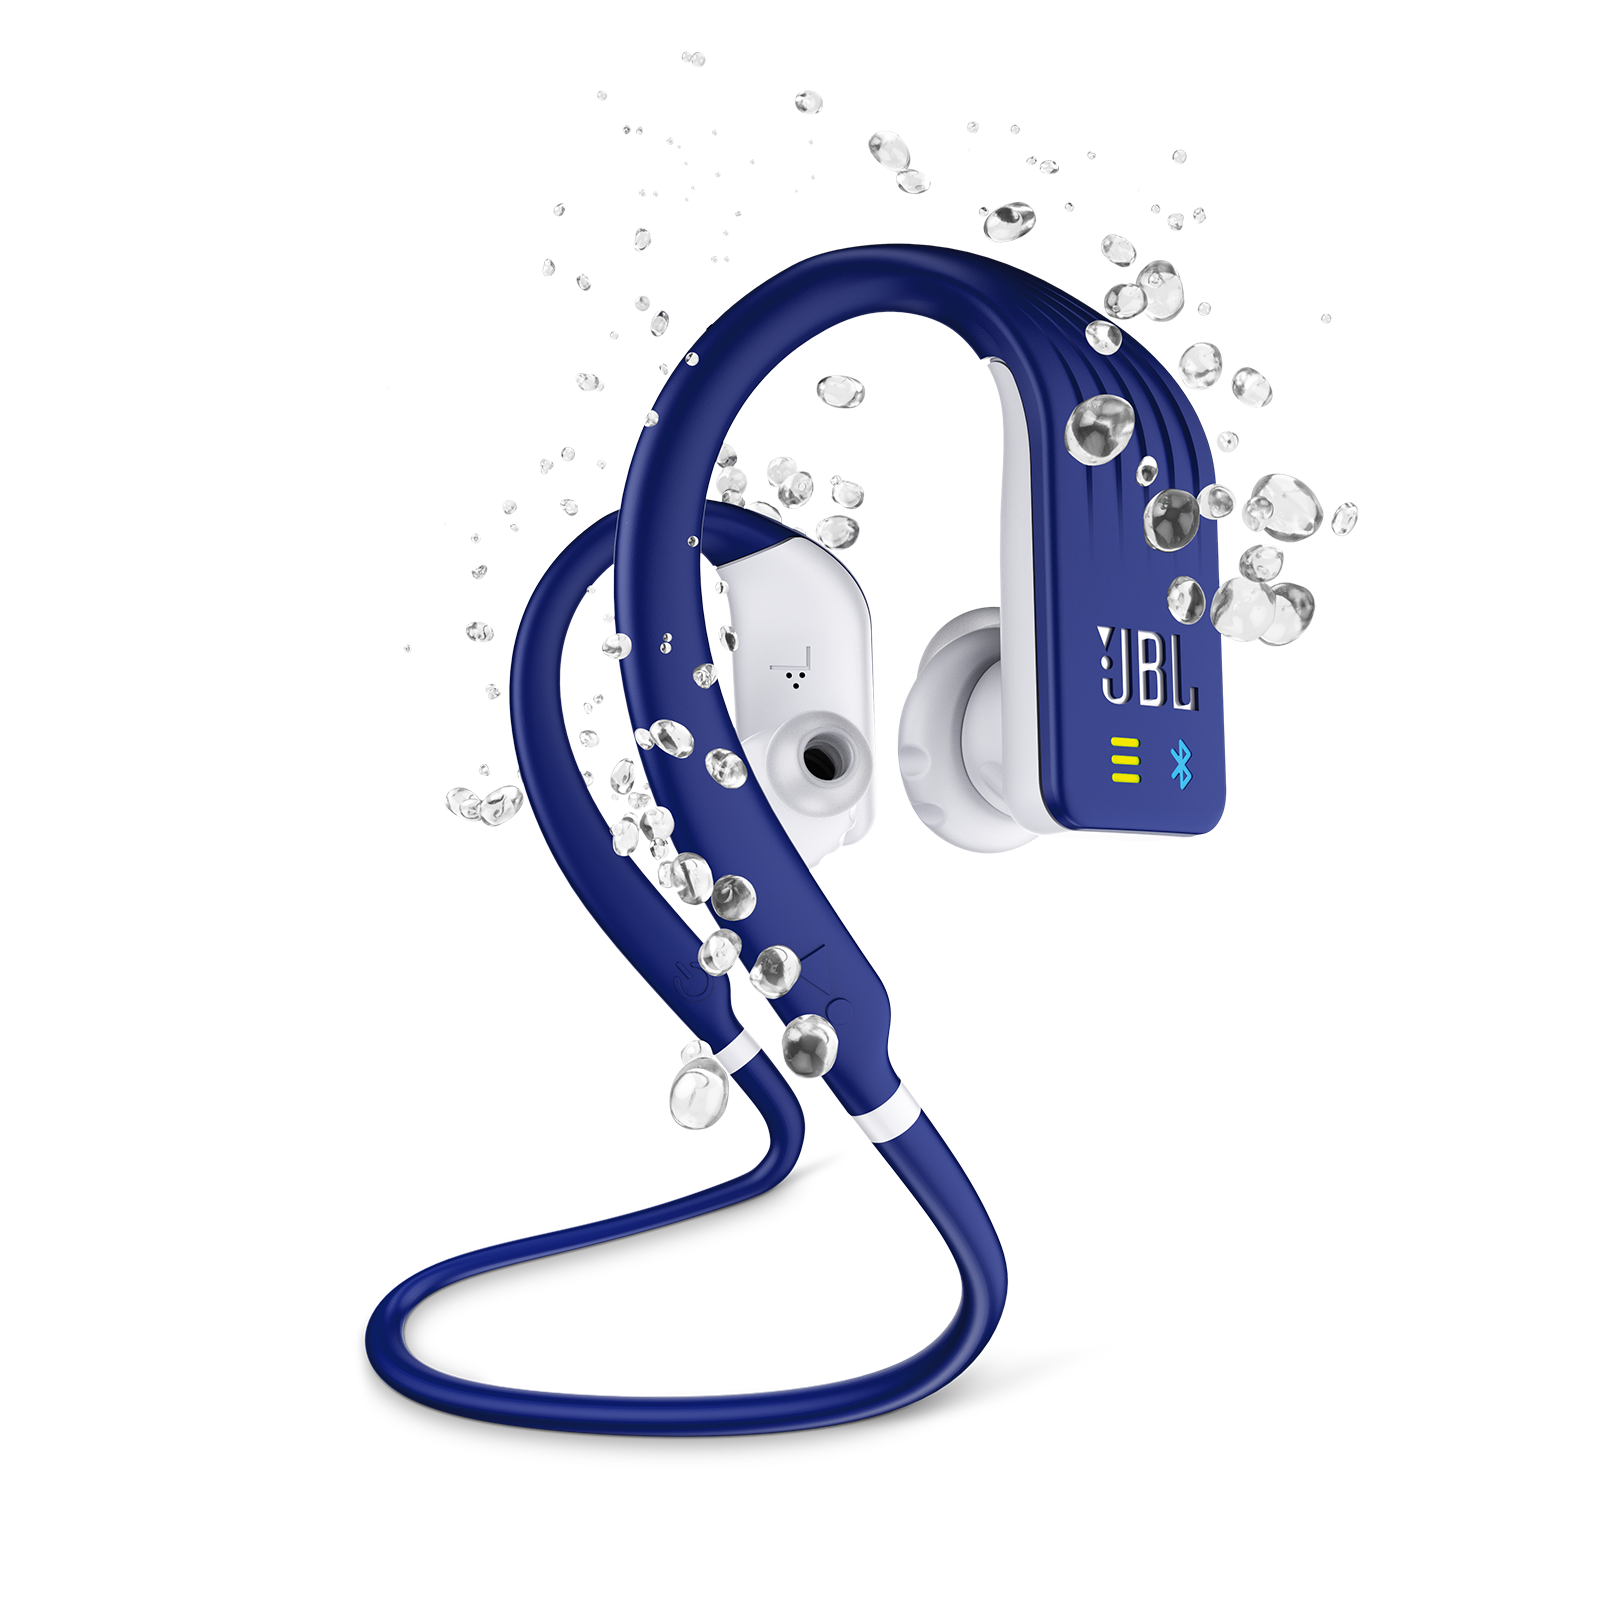 JBL Endurance DIVE - Blue - Waterproof Wireless In-Ear Sport Headphones with MP3 Player - Hero